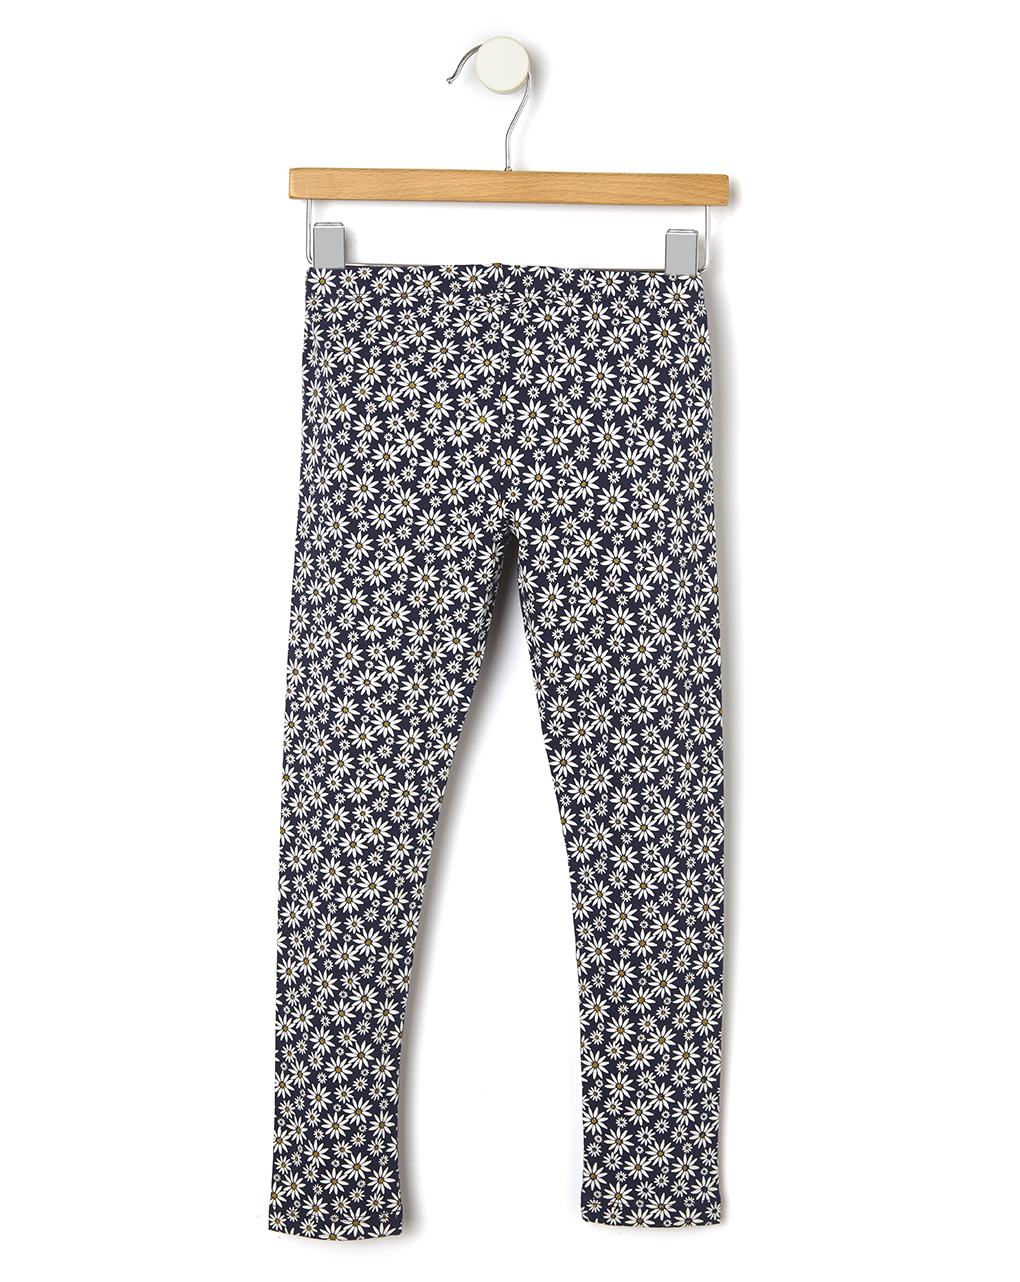 Leggings jersey stretch con stampa allover fiori - Prénatal